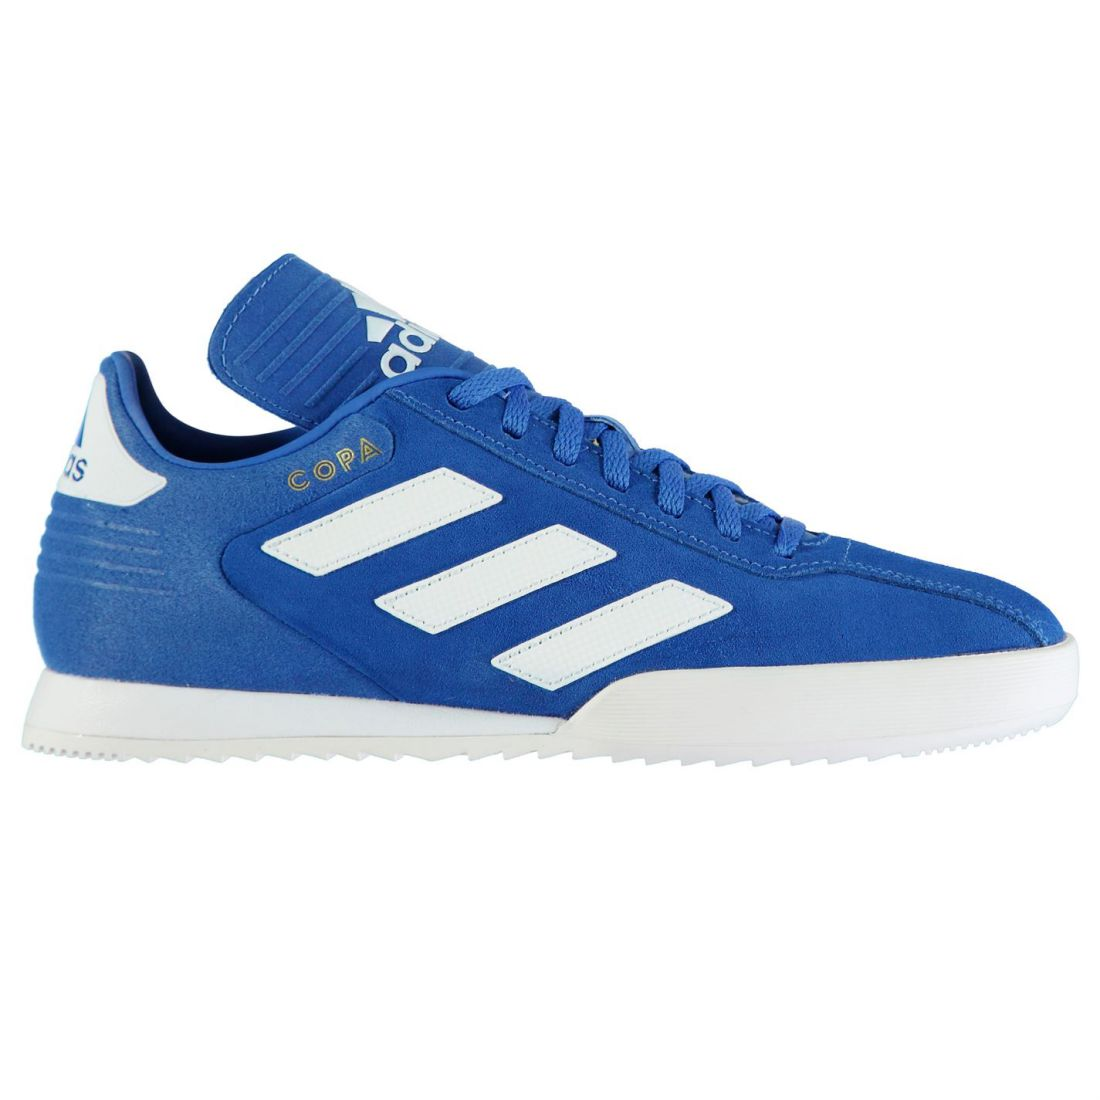 outlet store b4962 baa7c adidas Mens Copa Super Suede Trainers Lace Up Padded Ankle Collar Textured